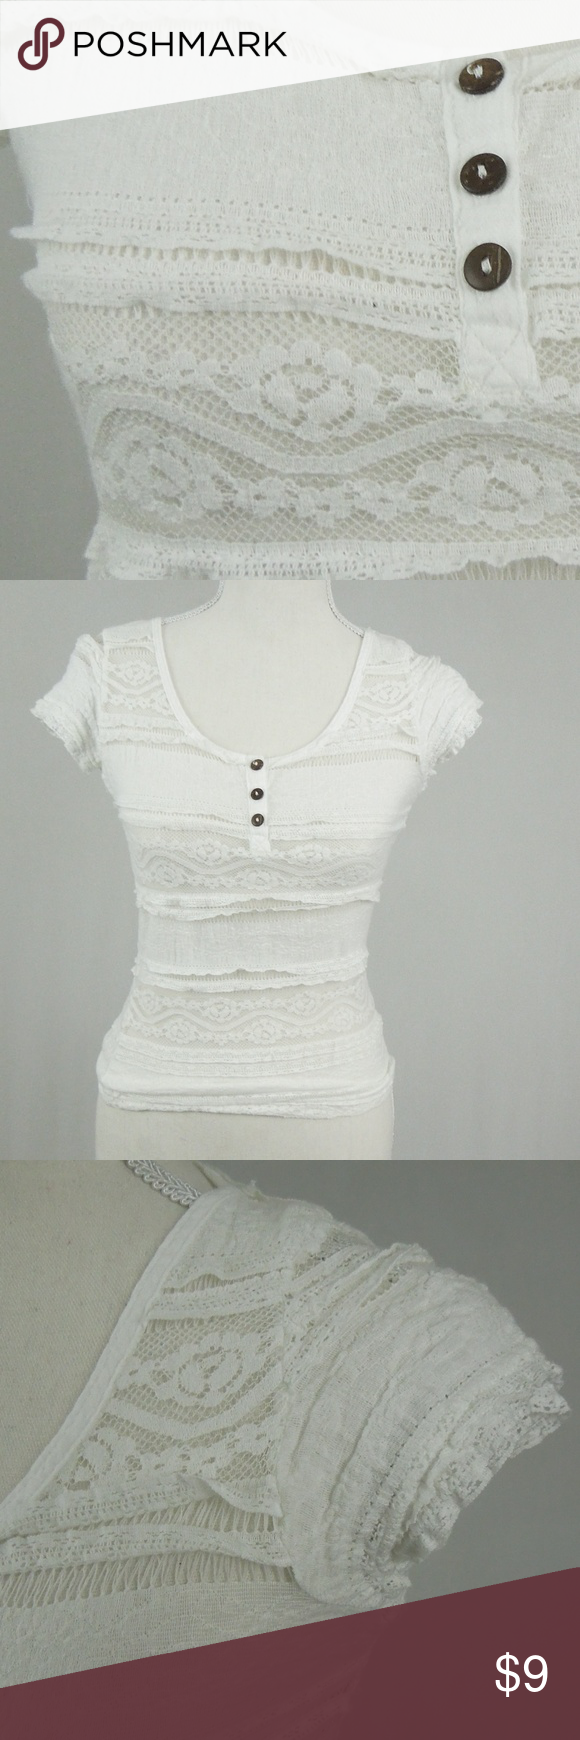 0991d533909d7 Blanc du Nil White Sheer Lace Top Blanc du Nil (The all-white clothing